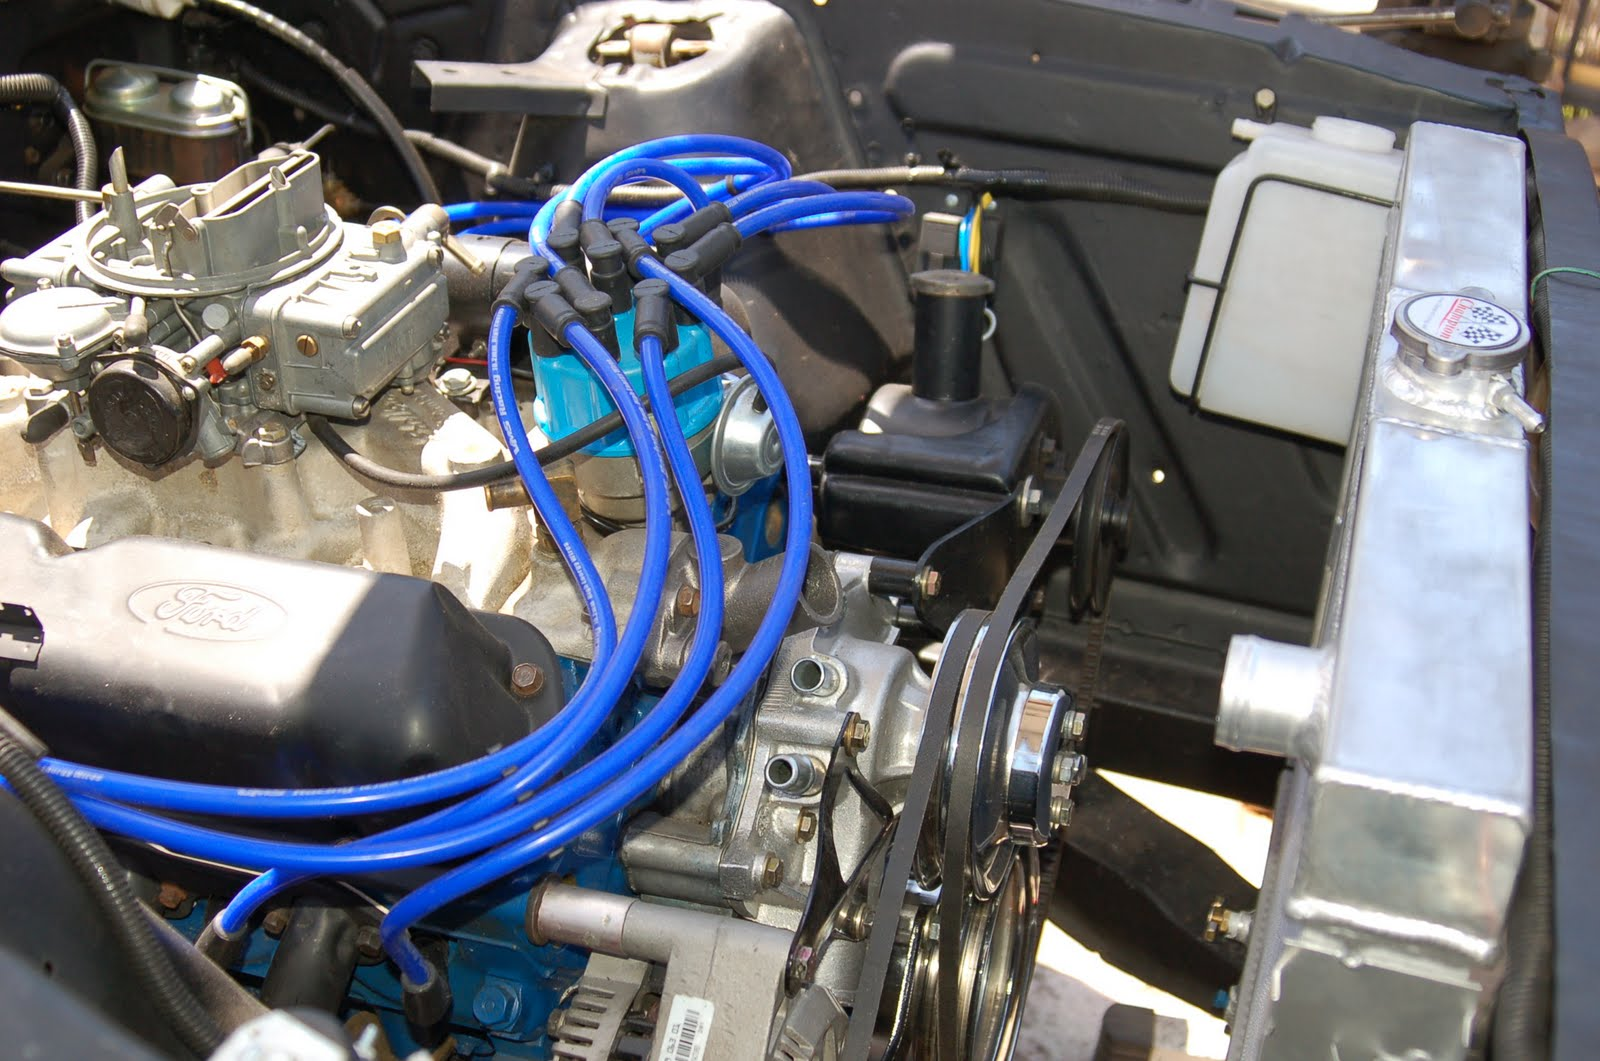 msd 6al wiring diagram mustang 5 0 gy6 150cc buggy 302 plug wire - schemes